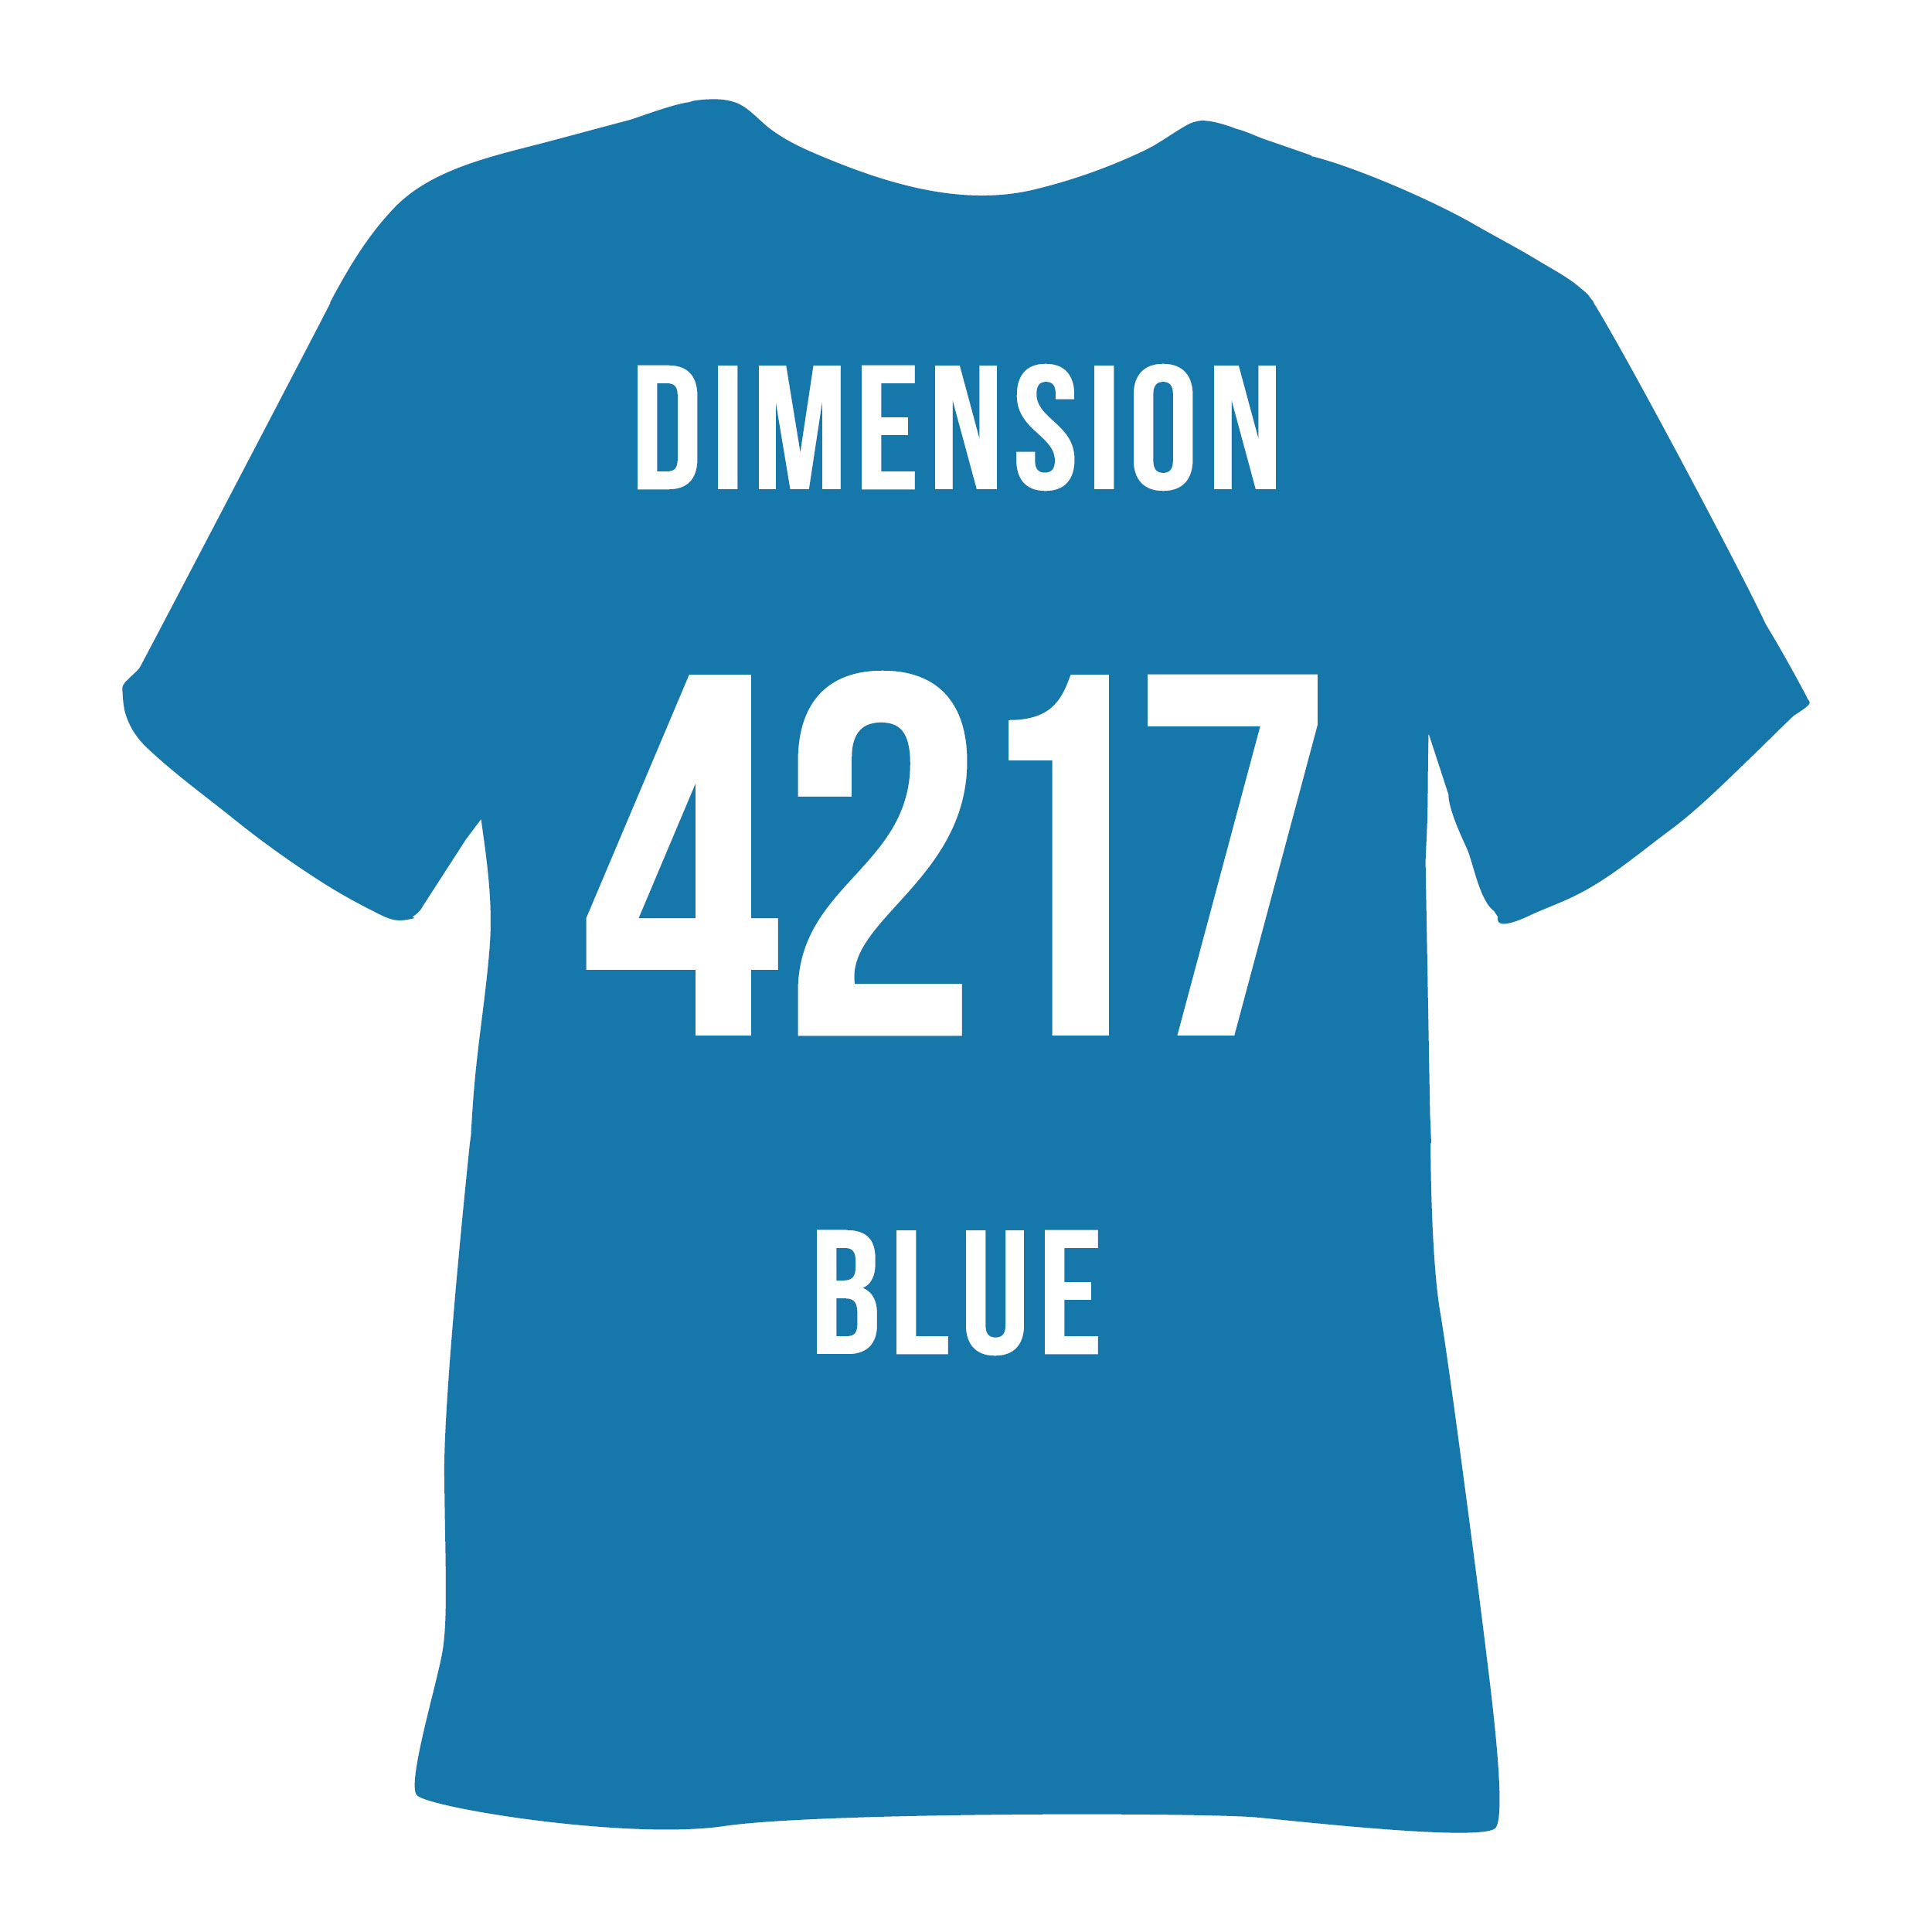 4217 DIMENSION BLUE